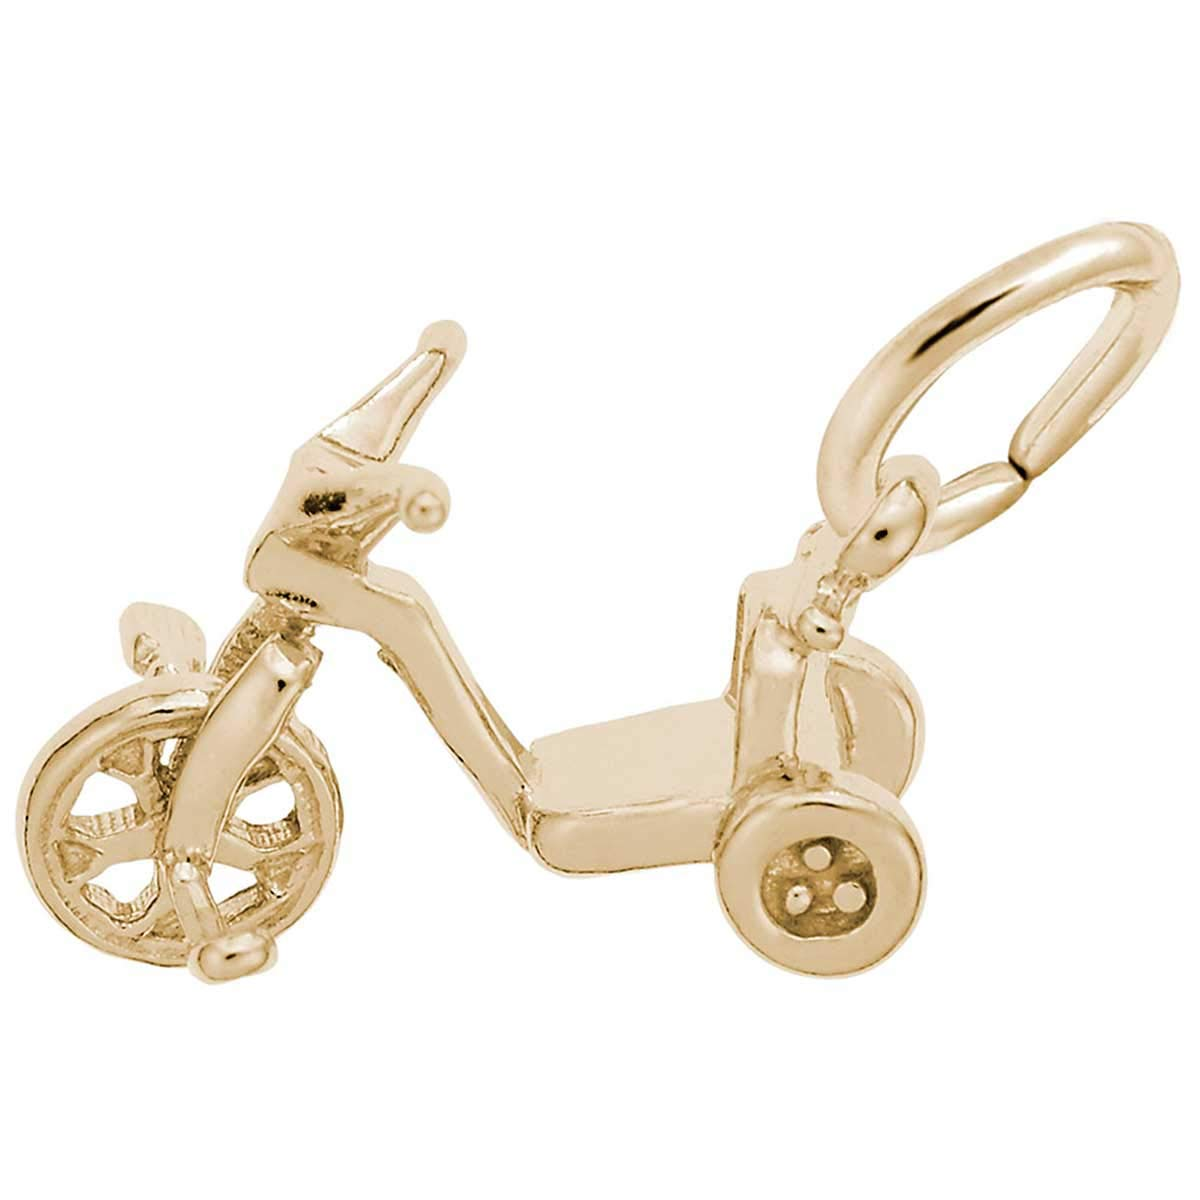 10K Yellow Gold Rembrandt Charms Tricycle Charm